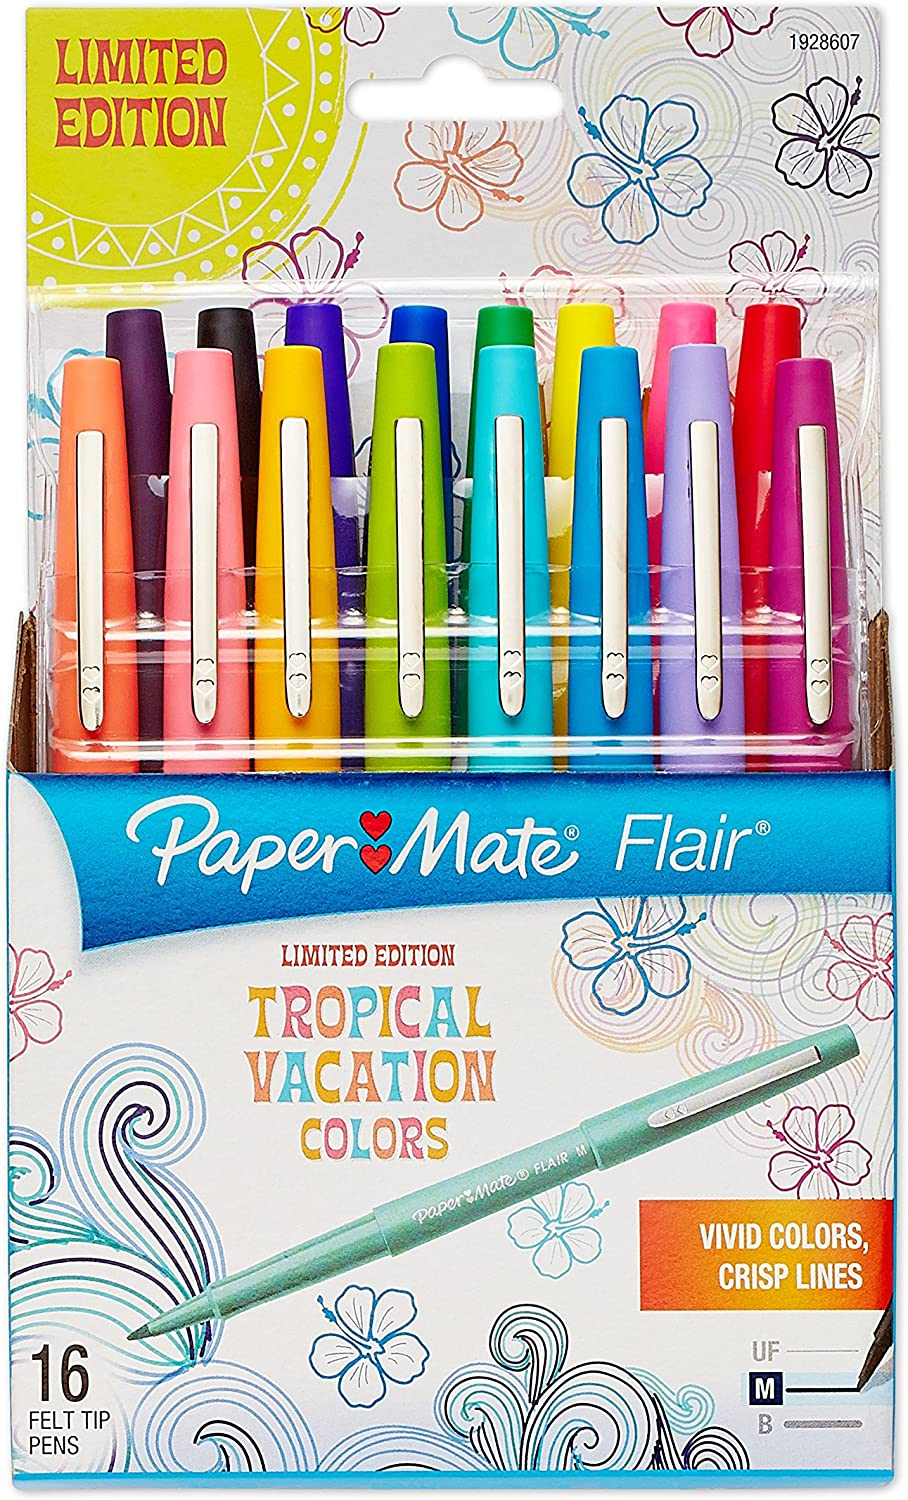 NEW Paper Mate Flair Medium Market Point  Lot of 9 BK,PU,RD,GN,OR,MG,BL,Lime